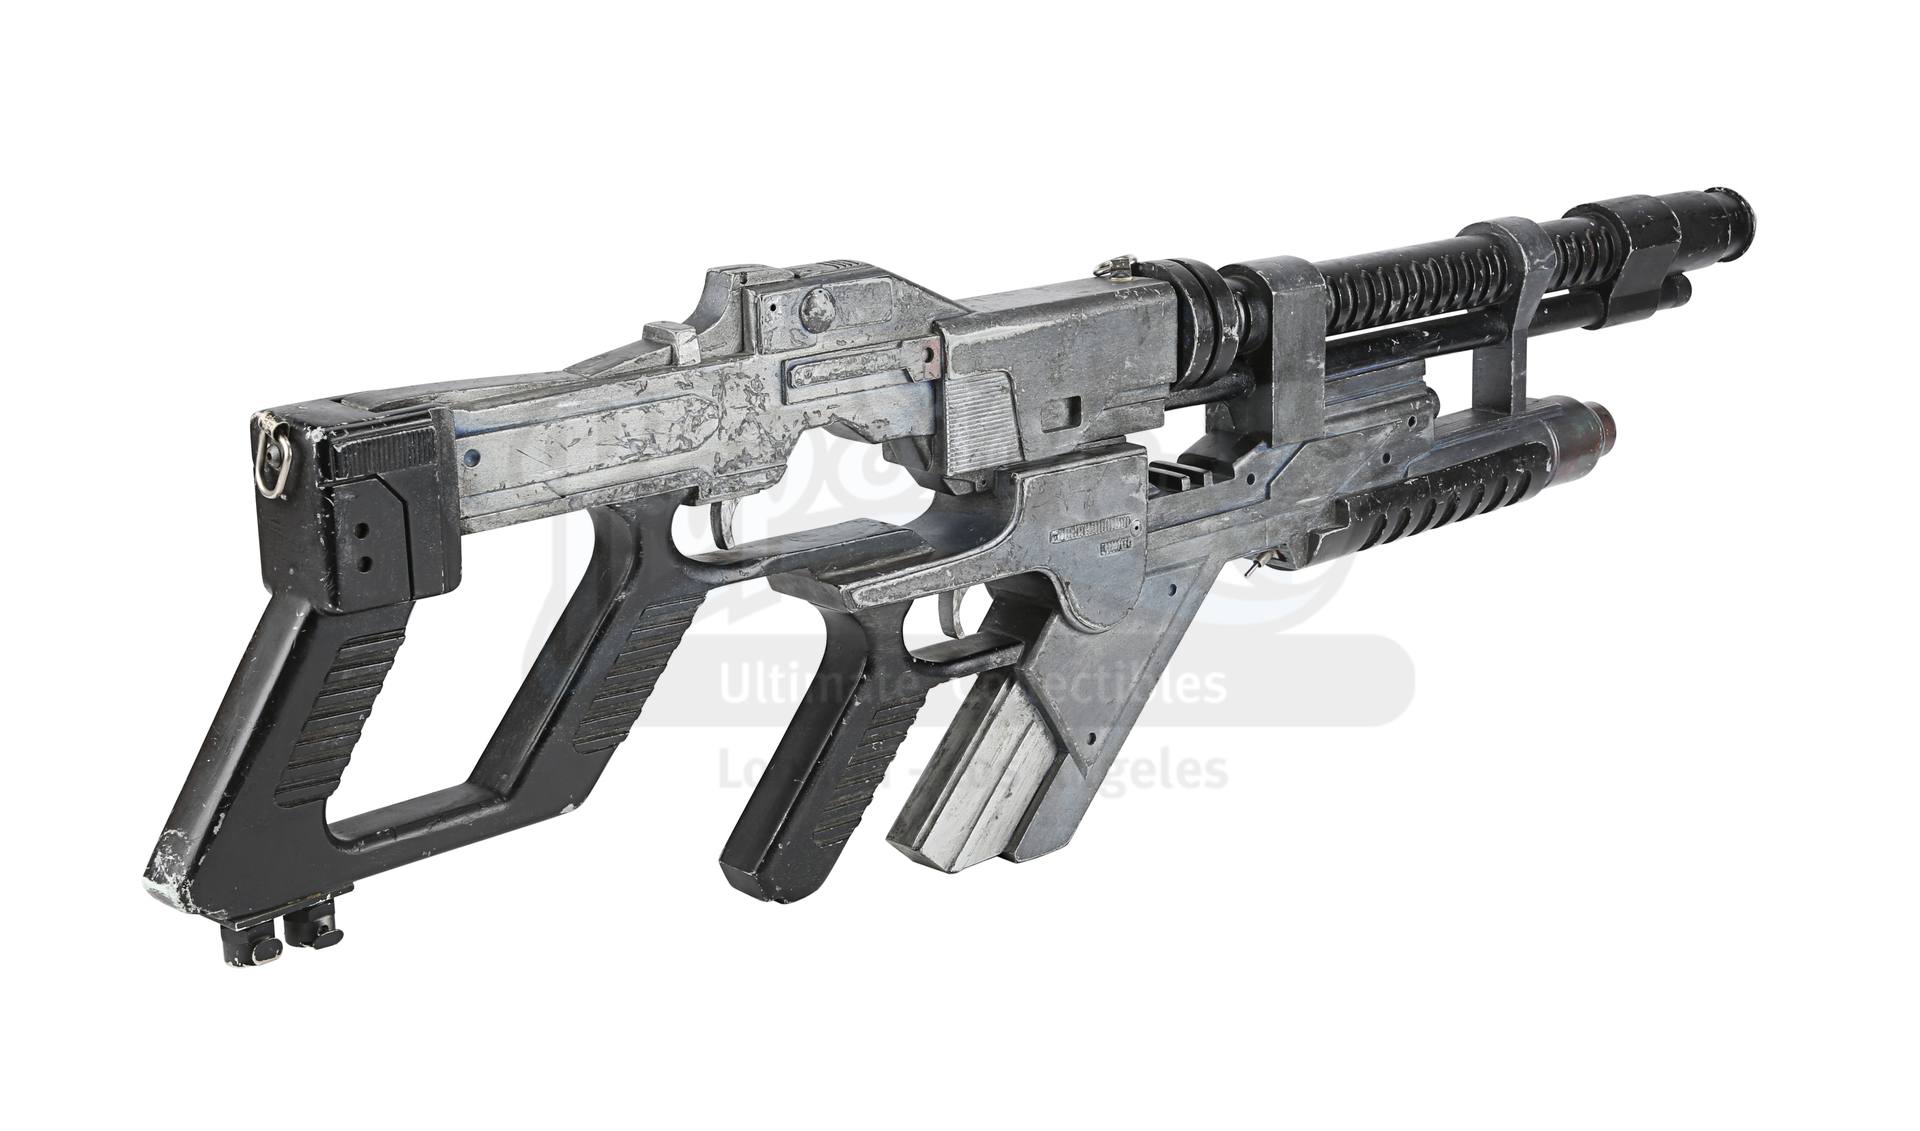 ALIEN RESURRECTION (1997) - Light-Up AR-2 Rifle - Image 7 of 19